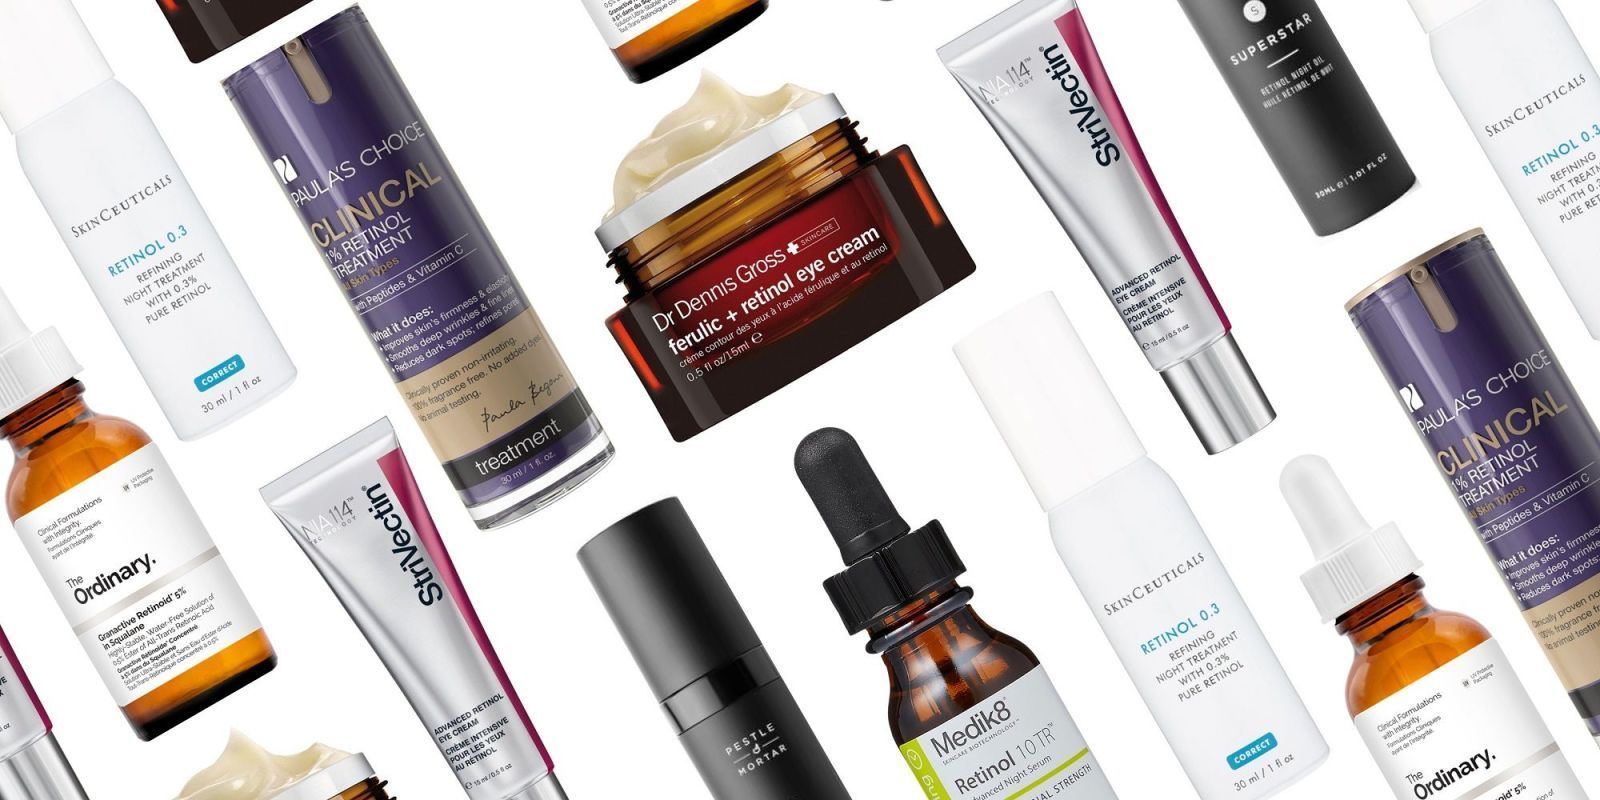 The Best Retinol Creams Serums And Oils For Your Most Flawless Skin Ever Retinol Retinol Moisturizer Skin Cleanser Products